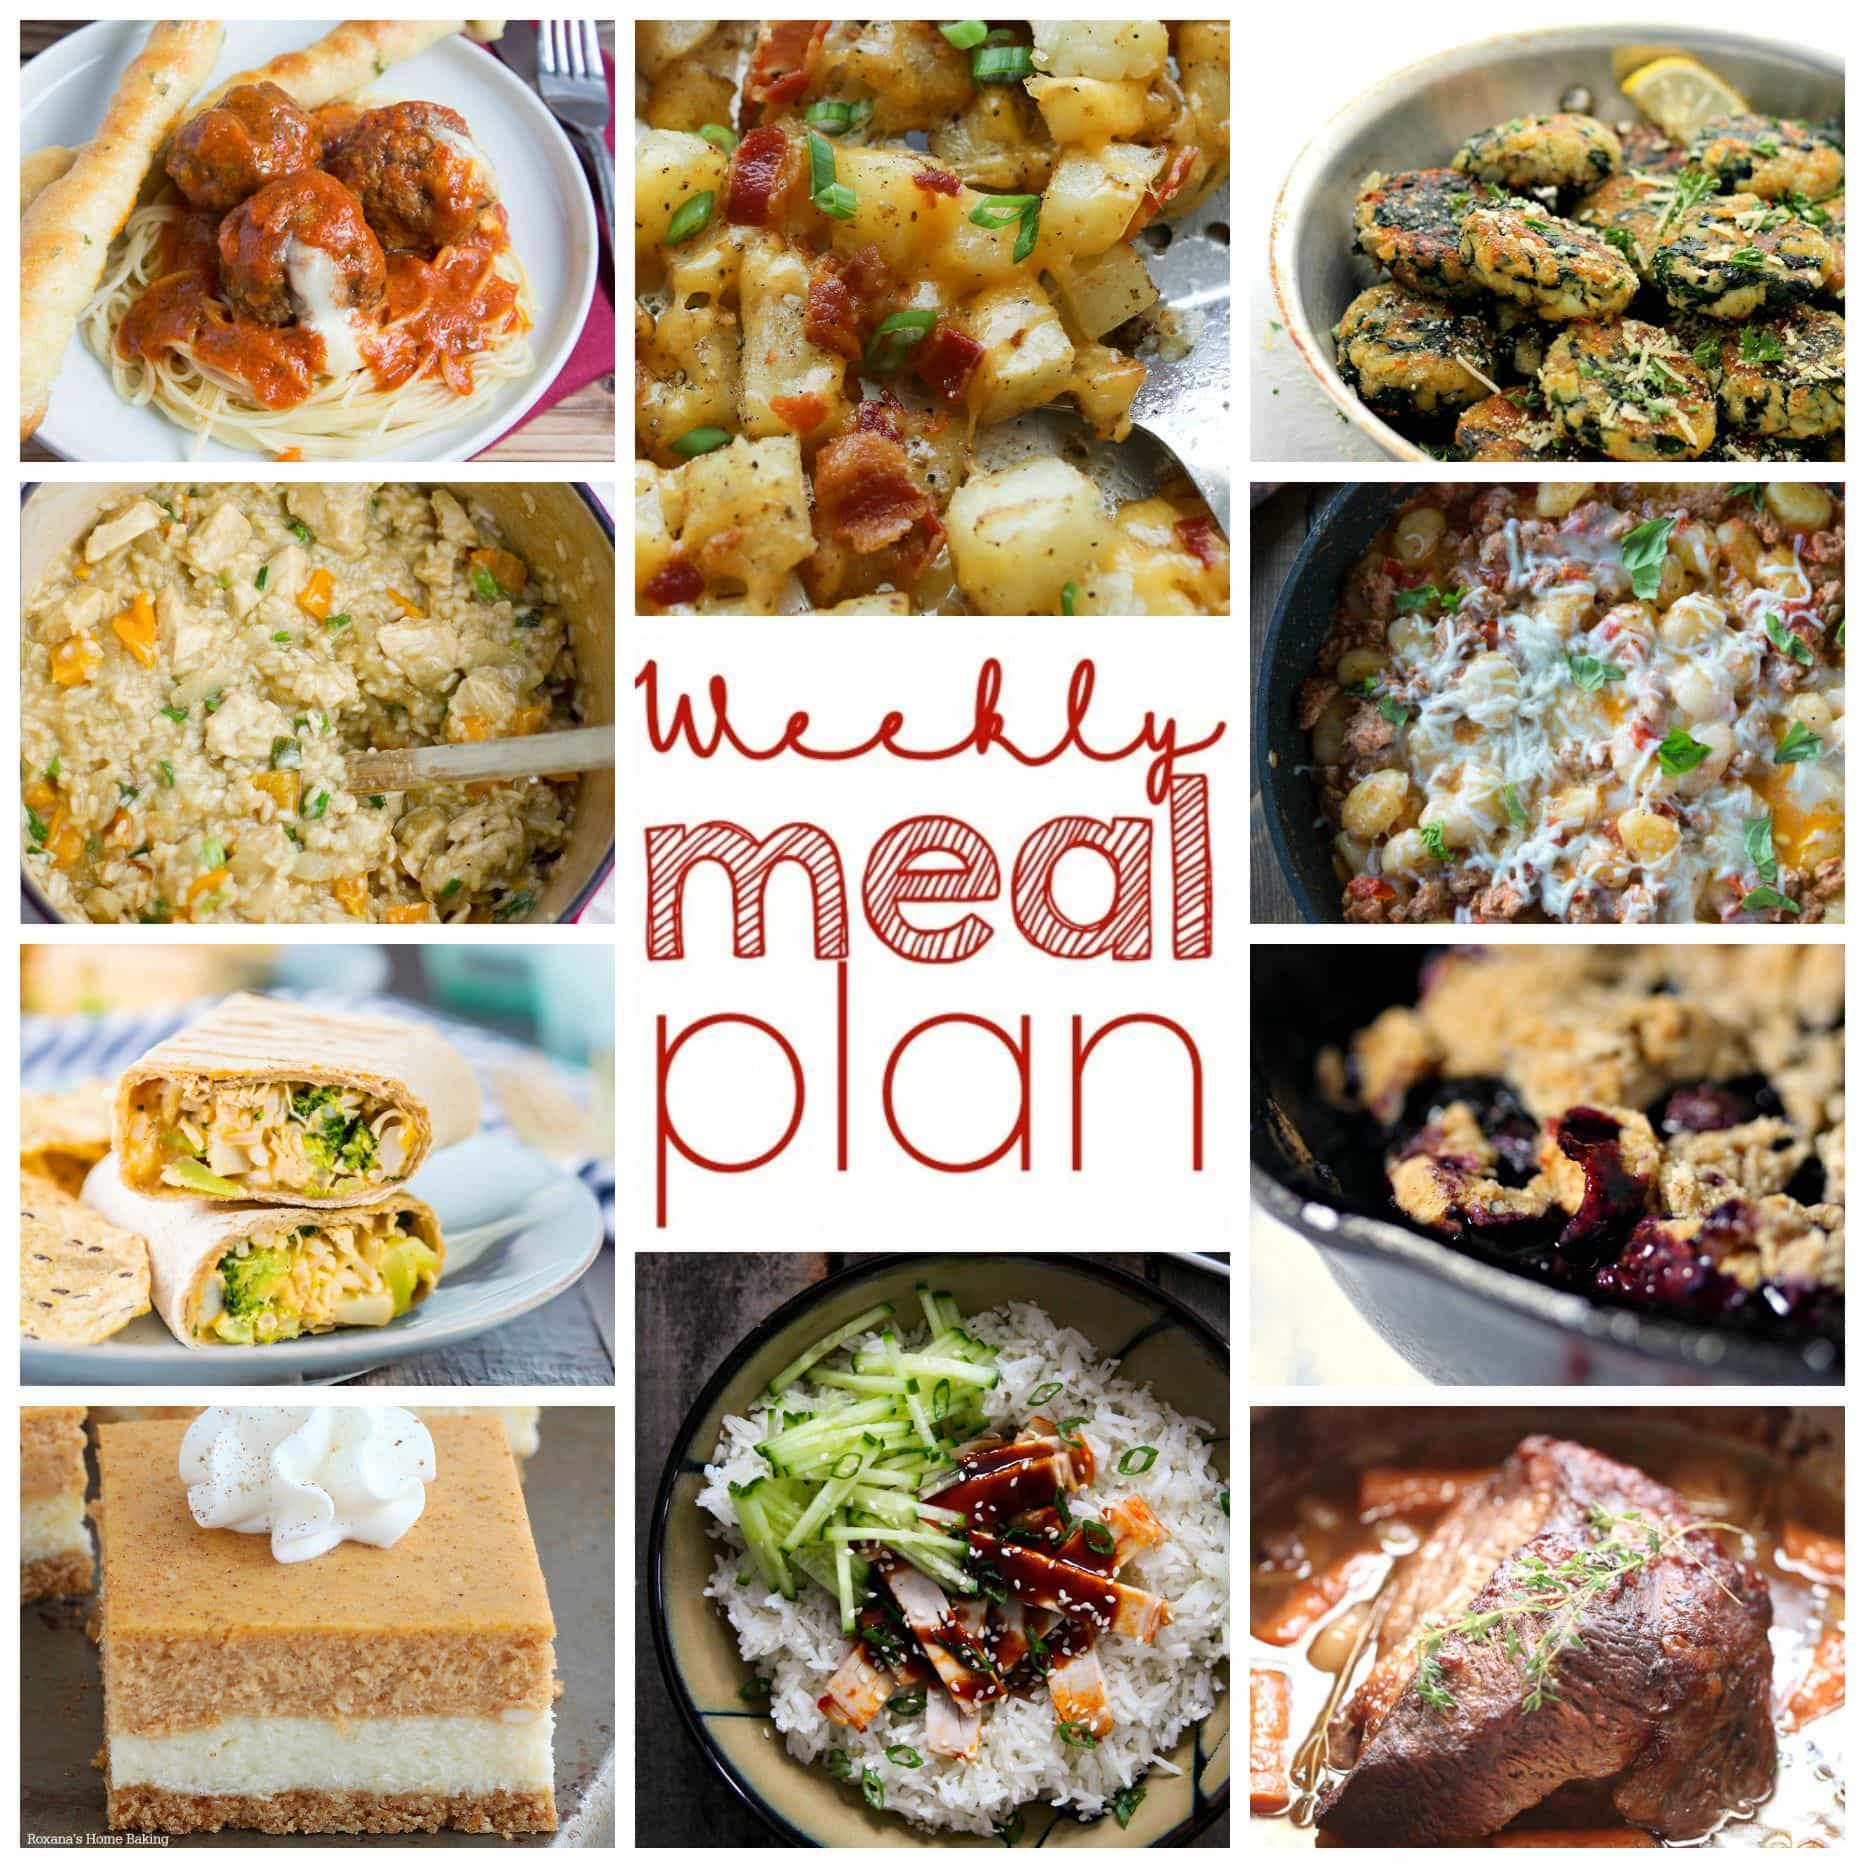 Weekly Meal Plan Week 8 - 10 top bloggers bringing you 6 dinner recipes, 2 side dishes and 2 desserts to make a quick, easy, and delicious week! #weeklymealprep